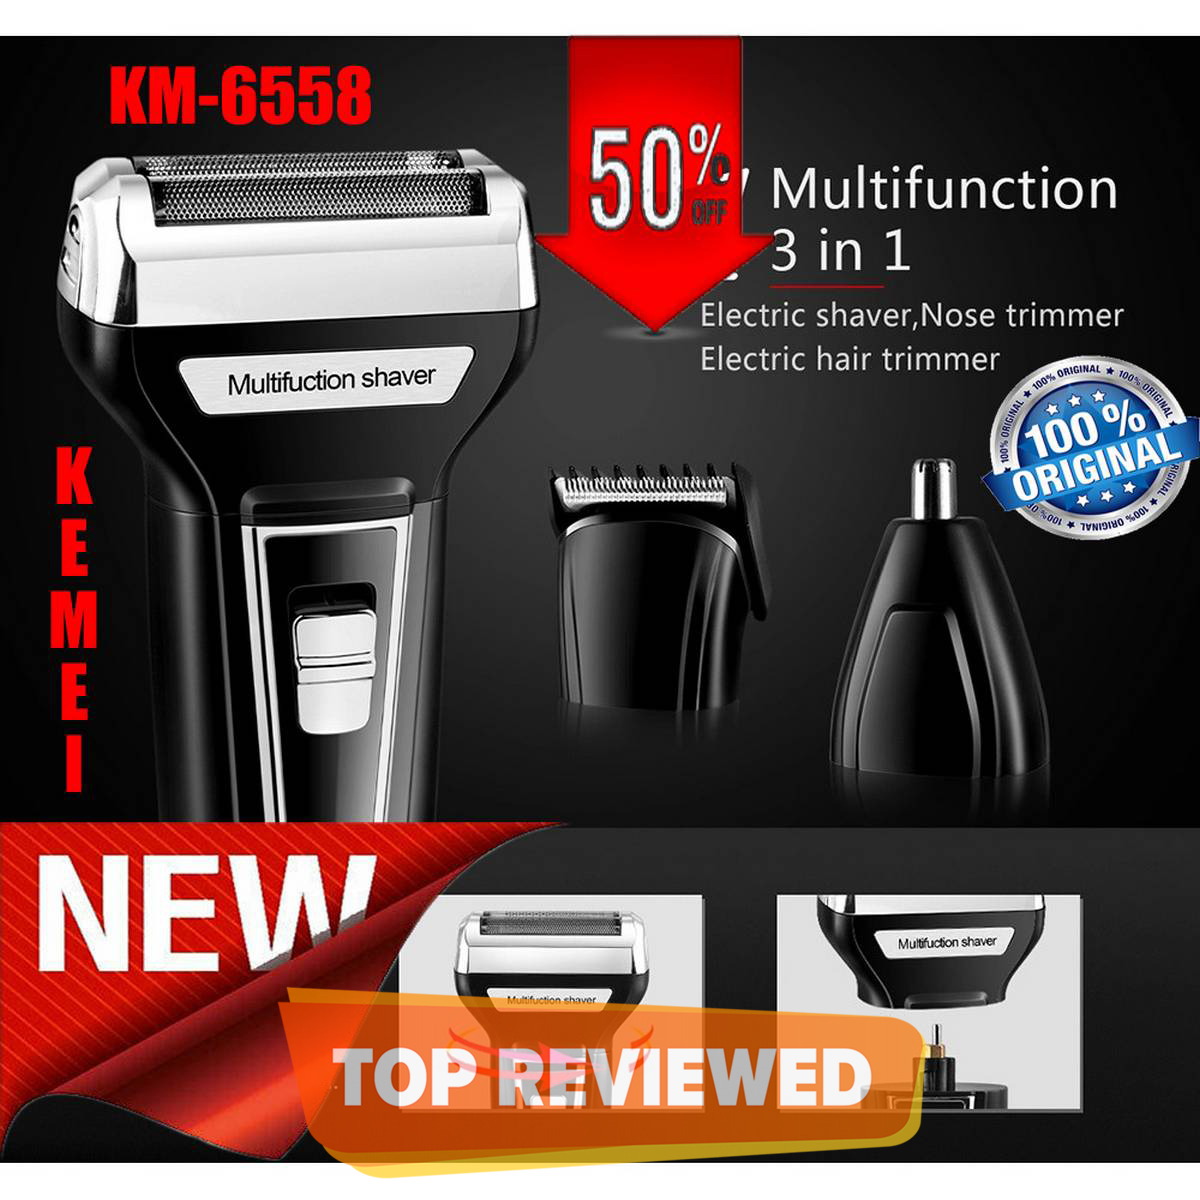 Kemei km-6558 Hair Clipper Razor Shaver Nose Trimmer 3 in 1 beard styling for men Rechargeable Hair Removal machine KM 6558